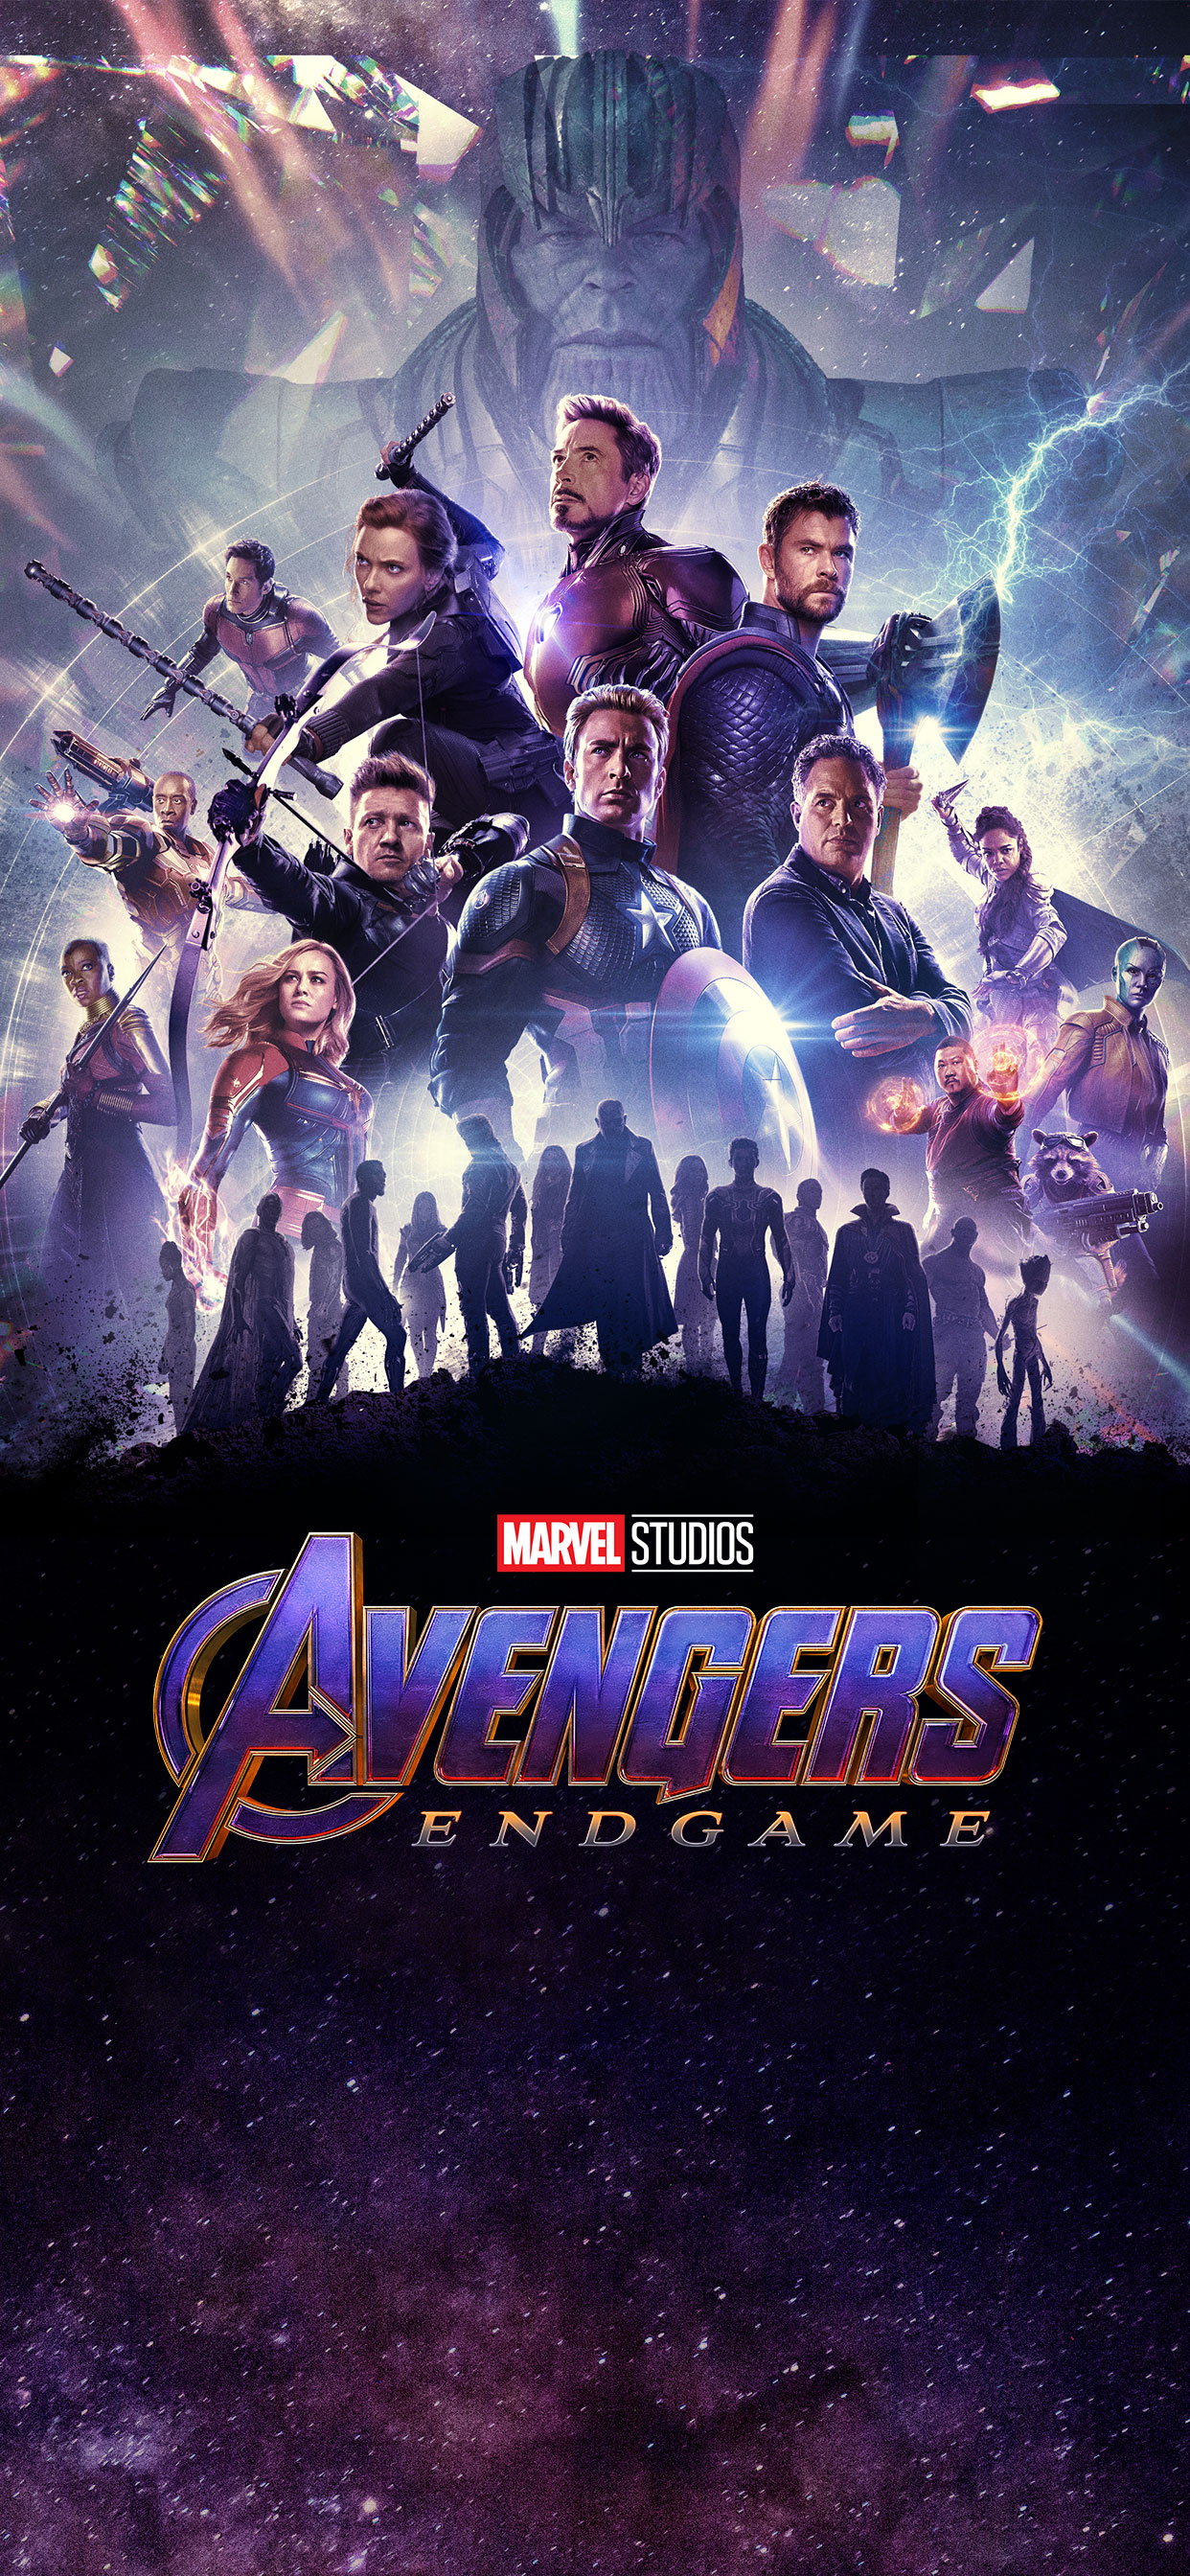 Avengers-Endgame-Movie-Poster-Vertical